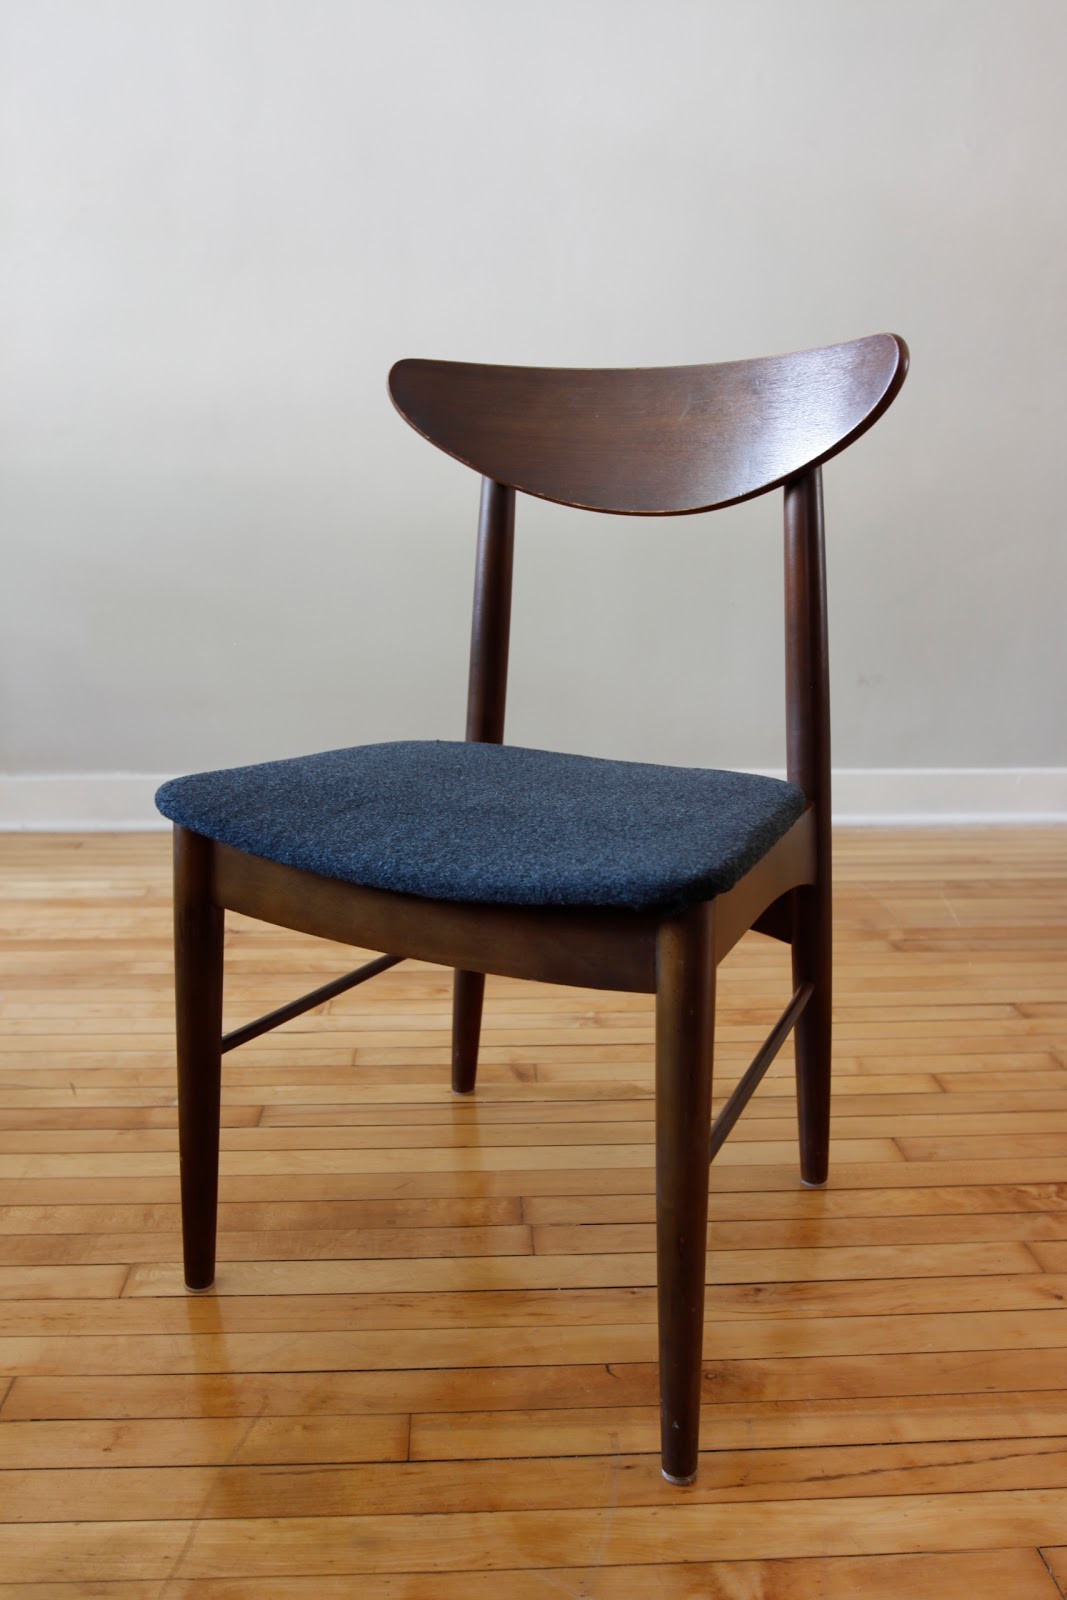 Best ideas about Mid Century Dining Chair . Save or Pin str8mcm Mid Century Dining Chairs Now.